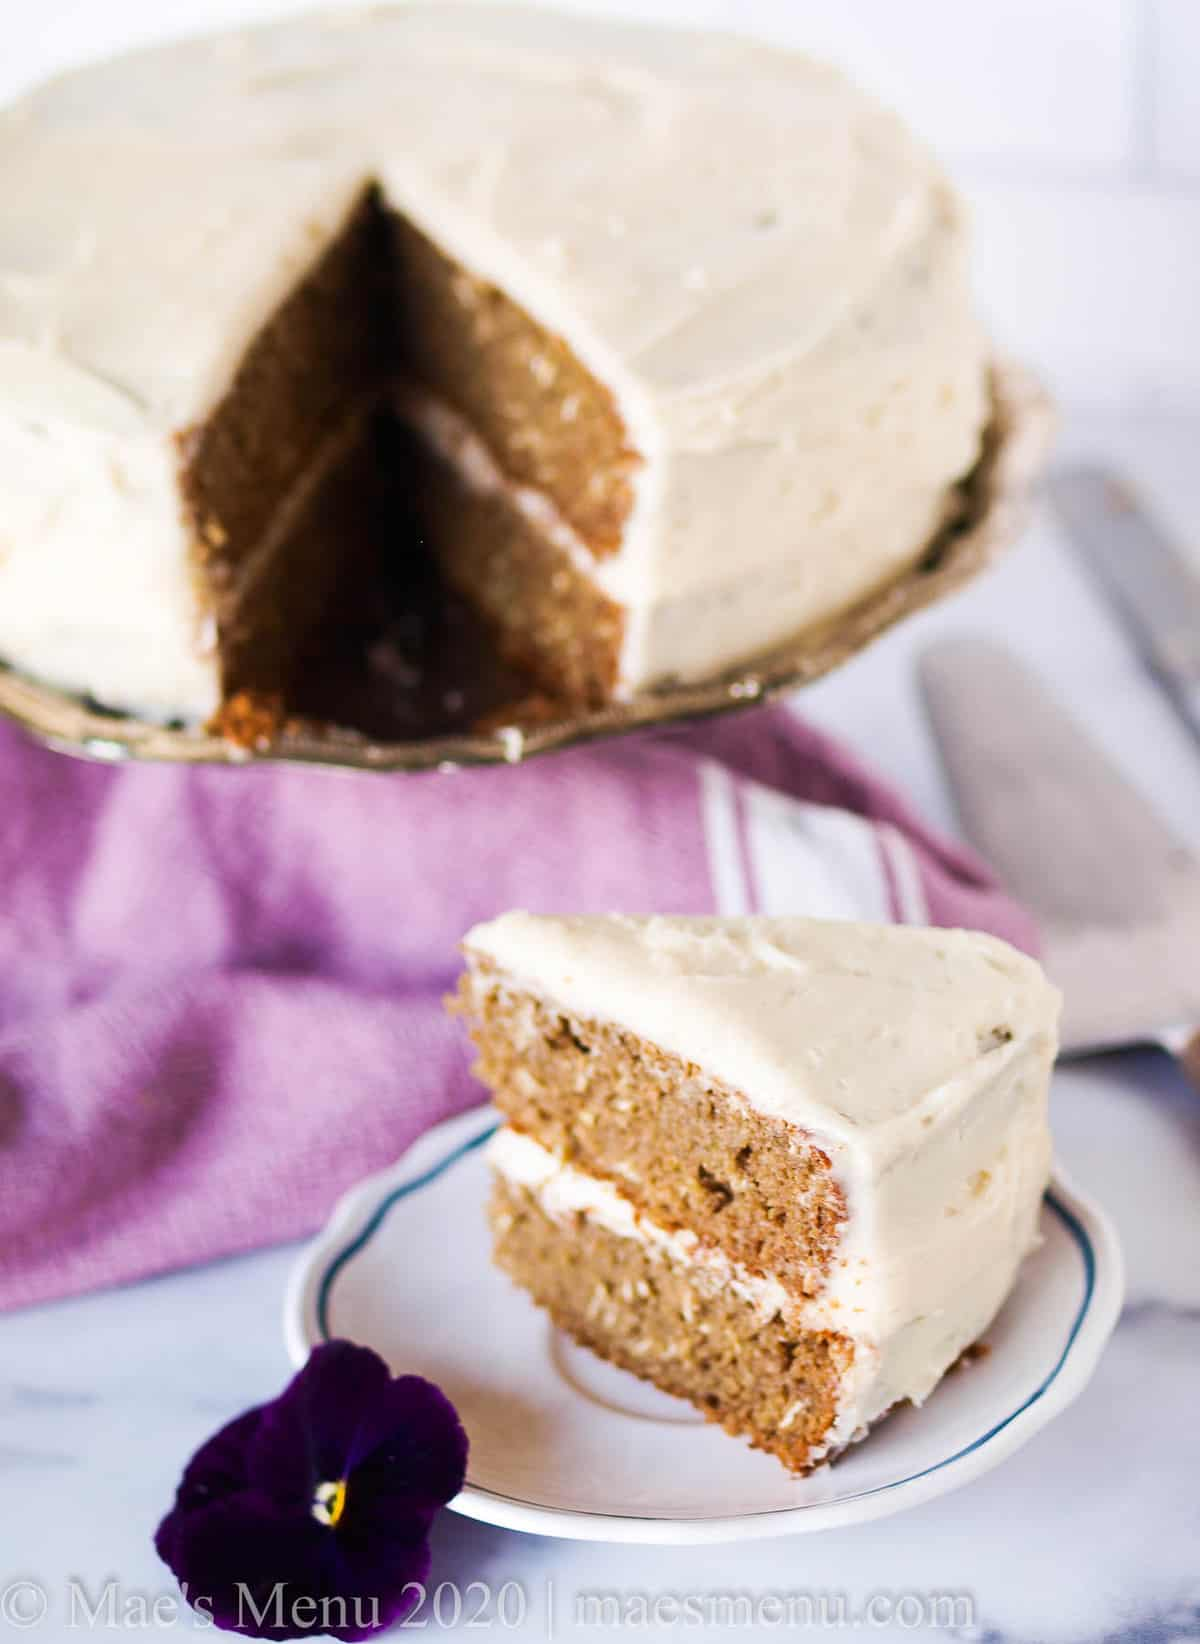 A cake stand with a banana oatmeal cake and a slice of cake in front of it.